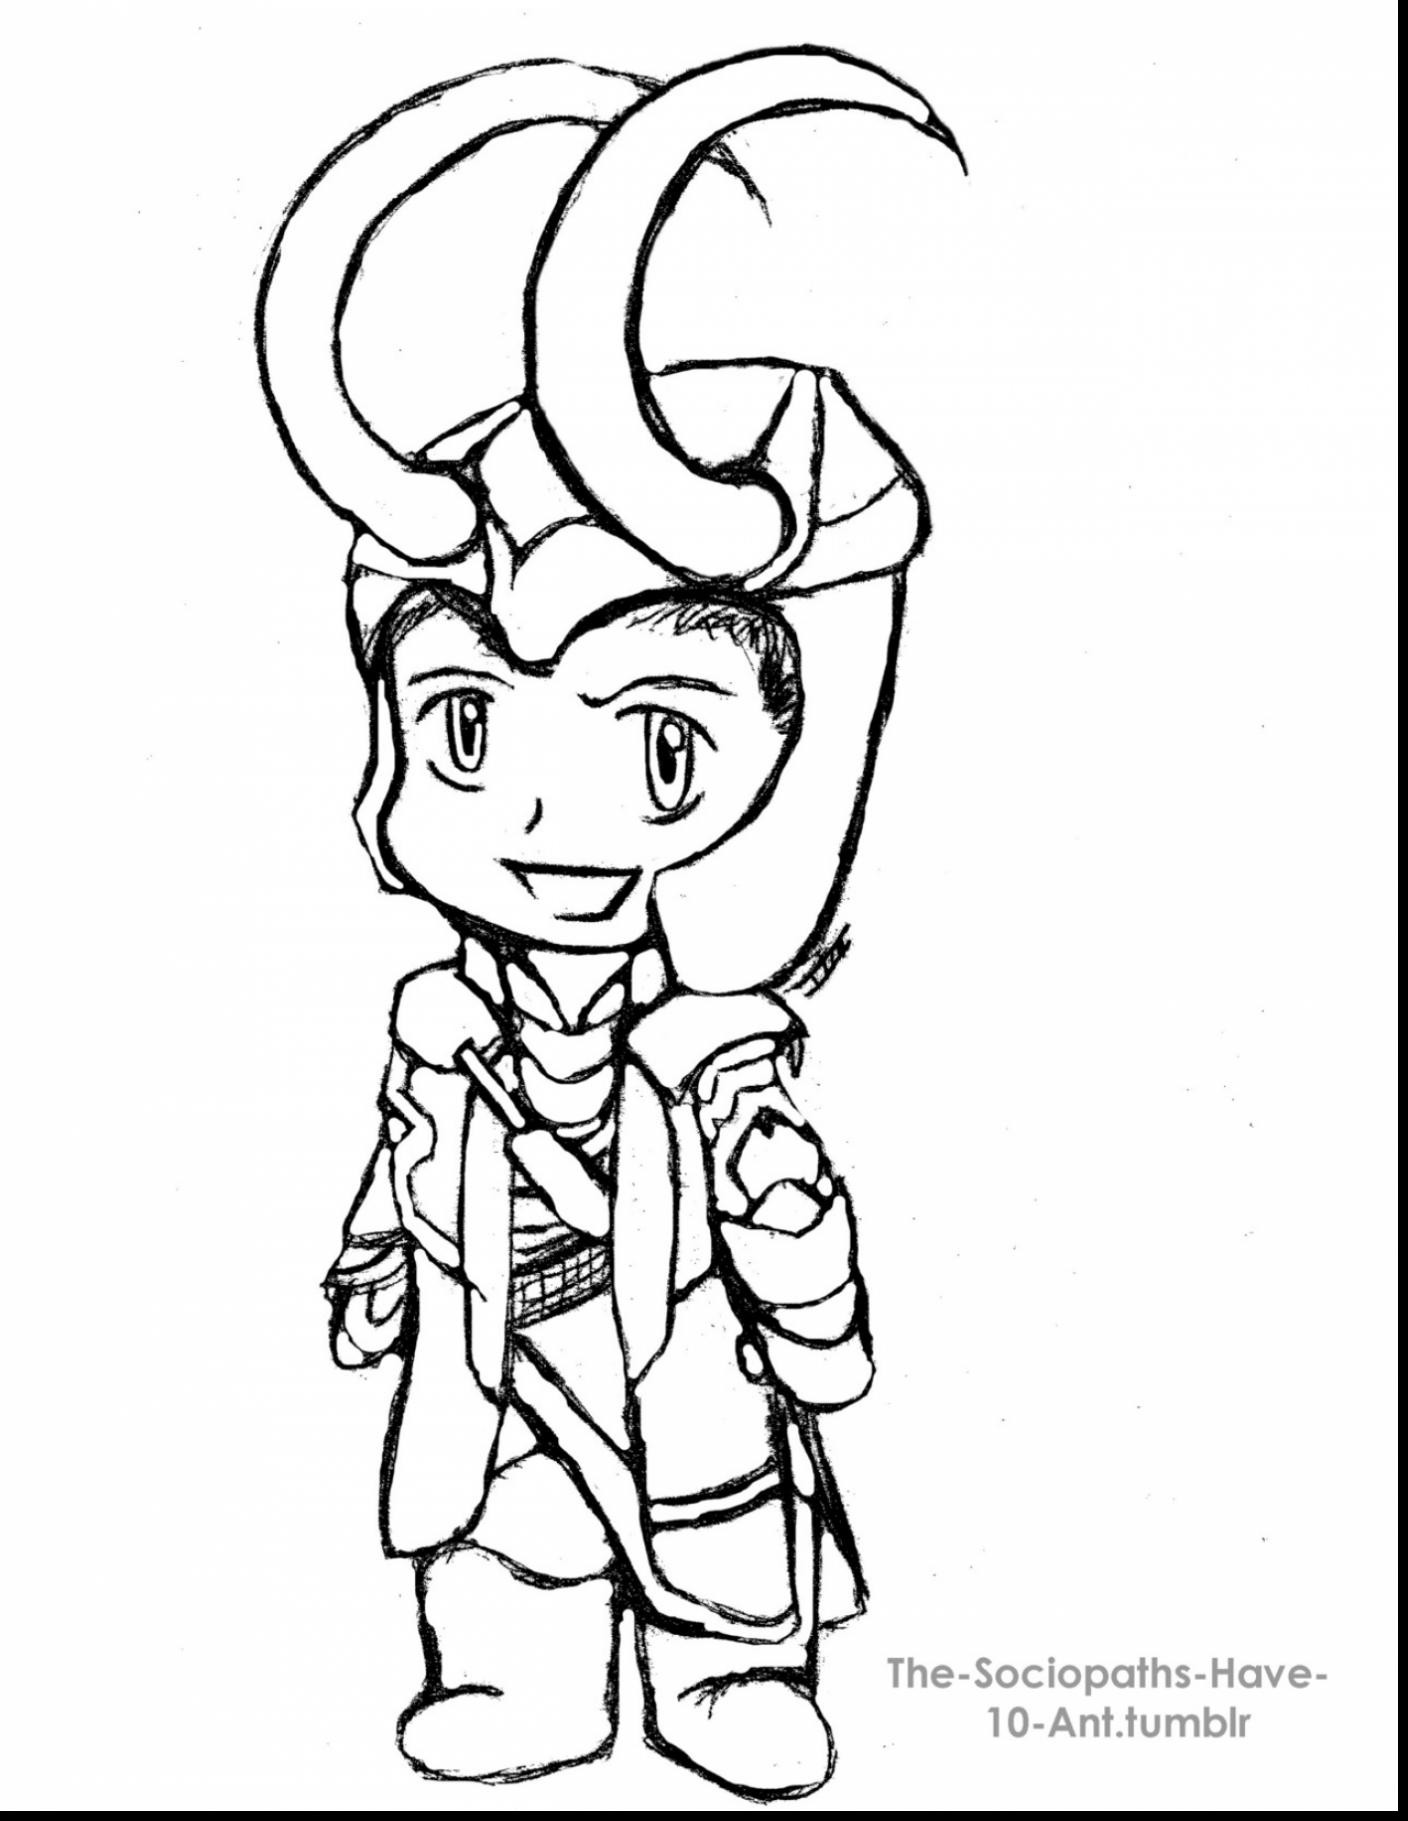 Loki Coloring Pages at GetDrawings com | Free for personal use Loki